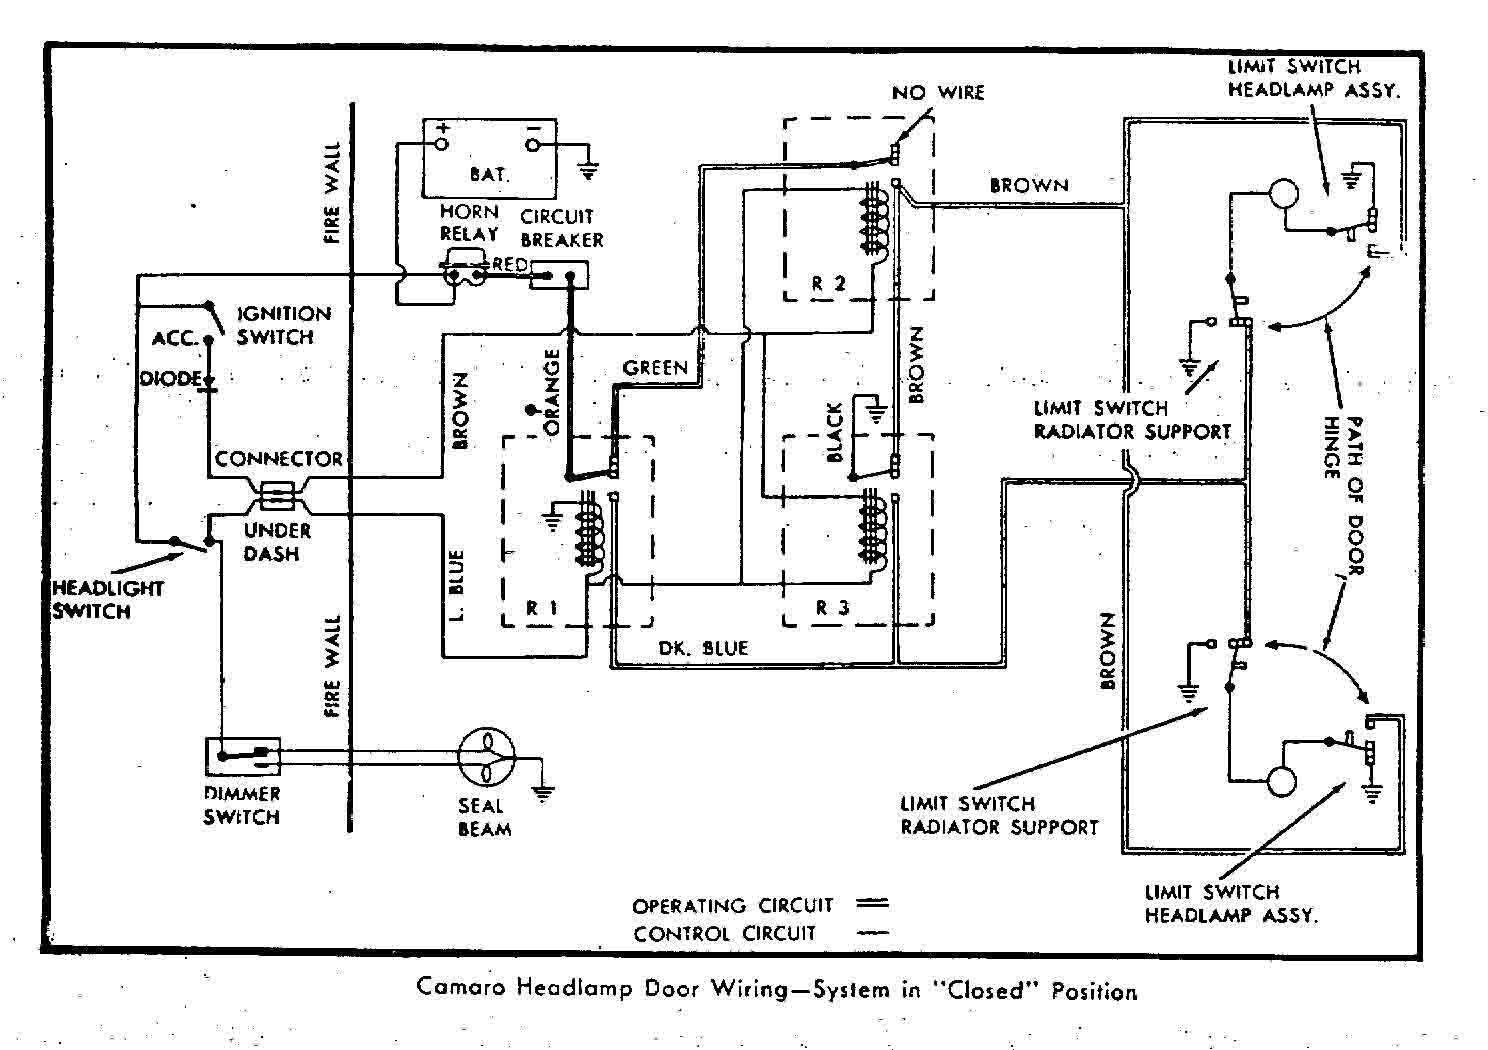 67 camaro headlight wiring harness schematic | 1967 camaro wiring diagram